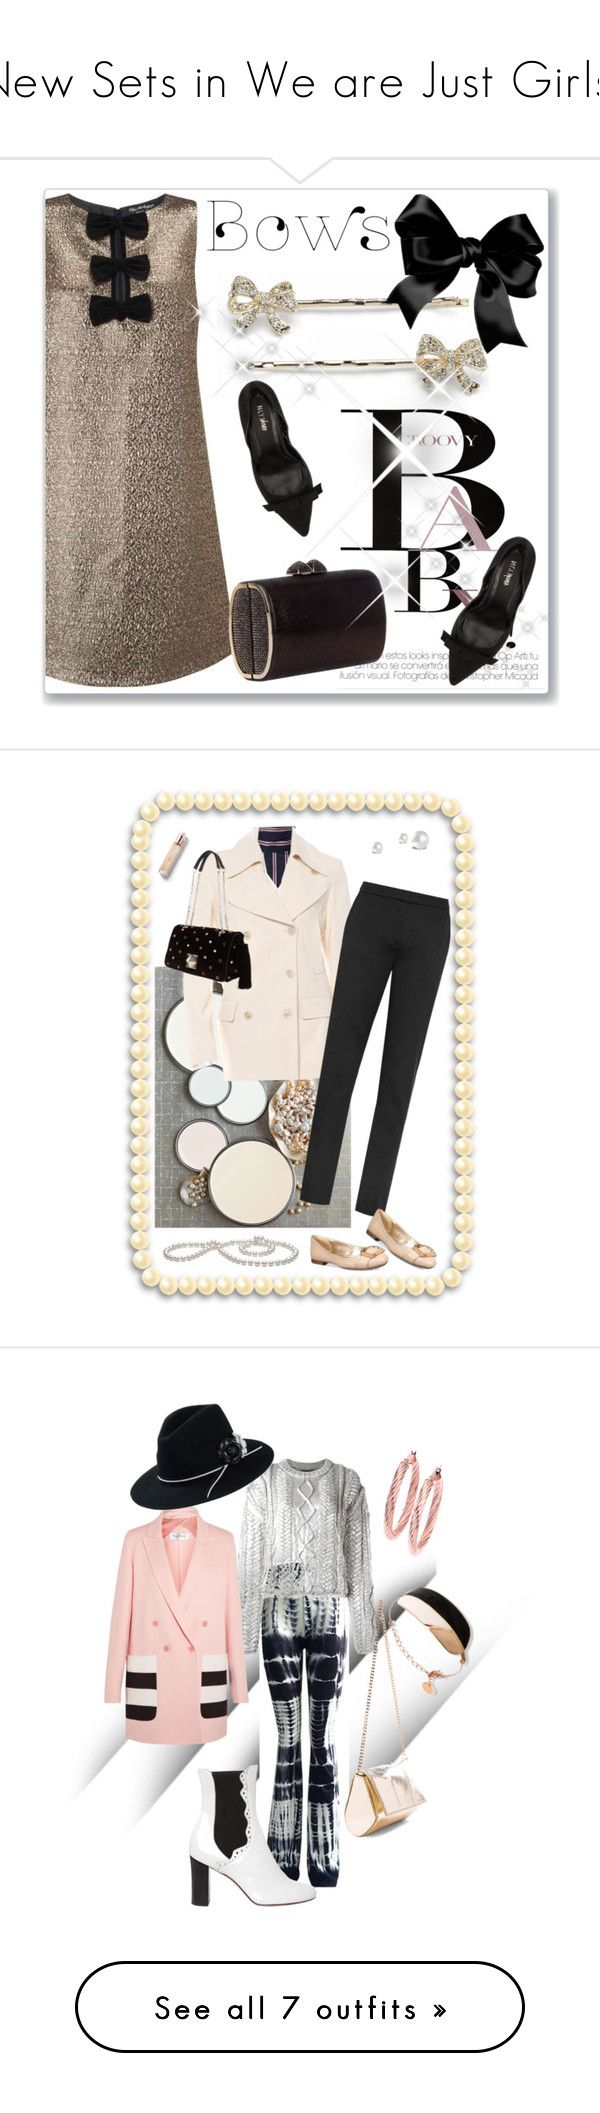 """""""New Sets in We are Just Girls!"""" by ragnh-mjos ❤ liked on Polyvore featuring contest, outfits, November, Miss Selfridge, LC Lauren Conrad, Jimmy Choo, Nly Shoes, bows, Le Sarte Pettegole and Maison Margiela"""